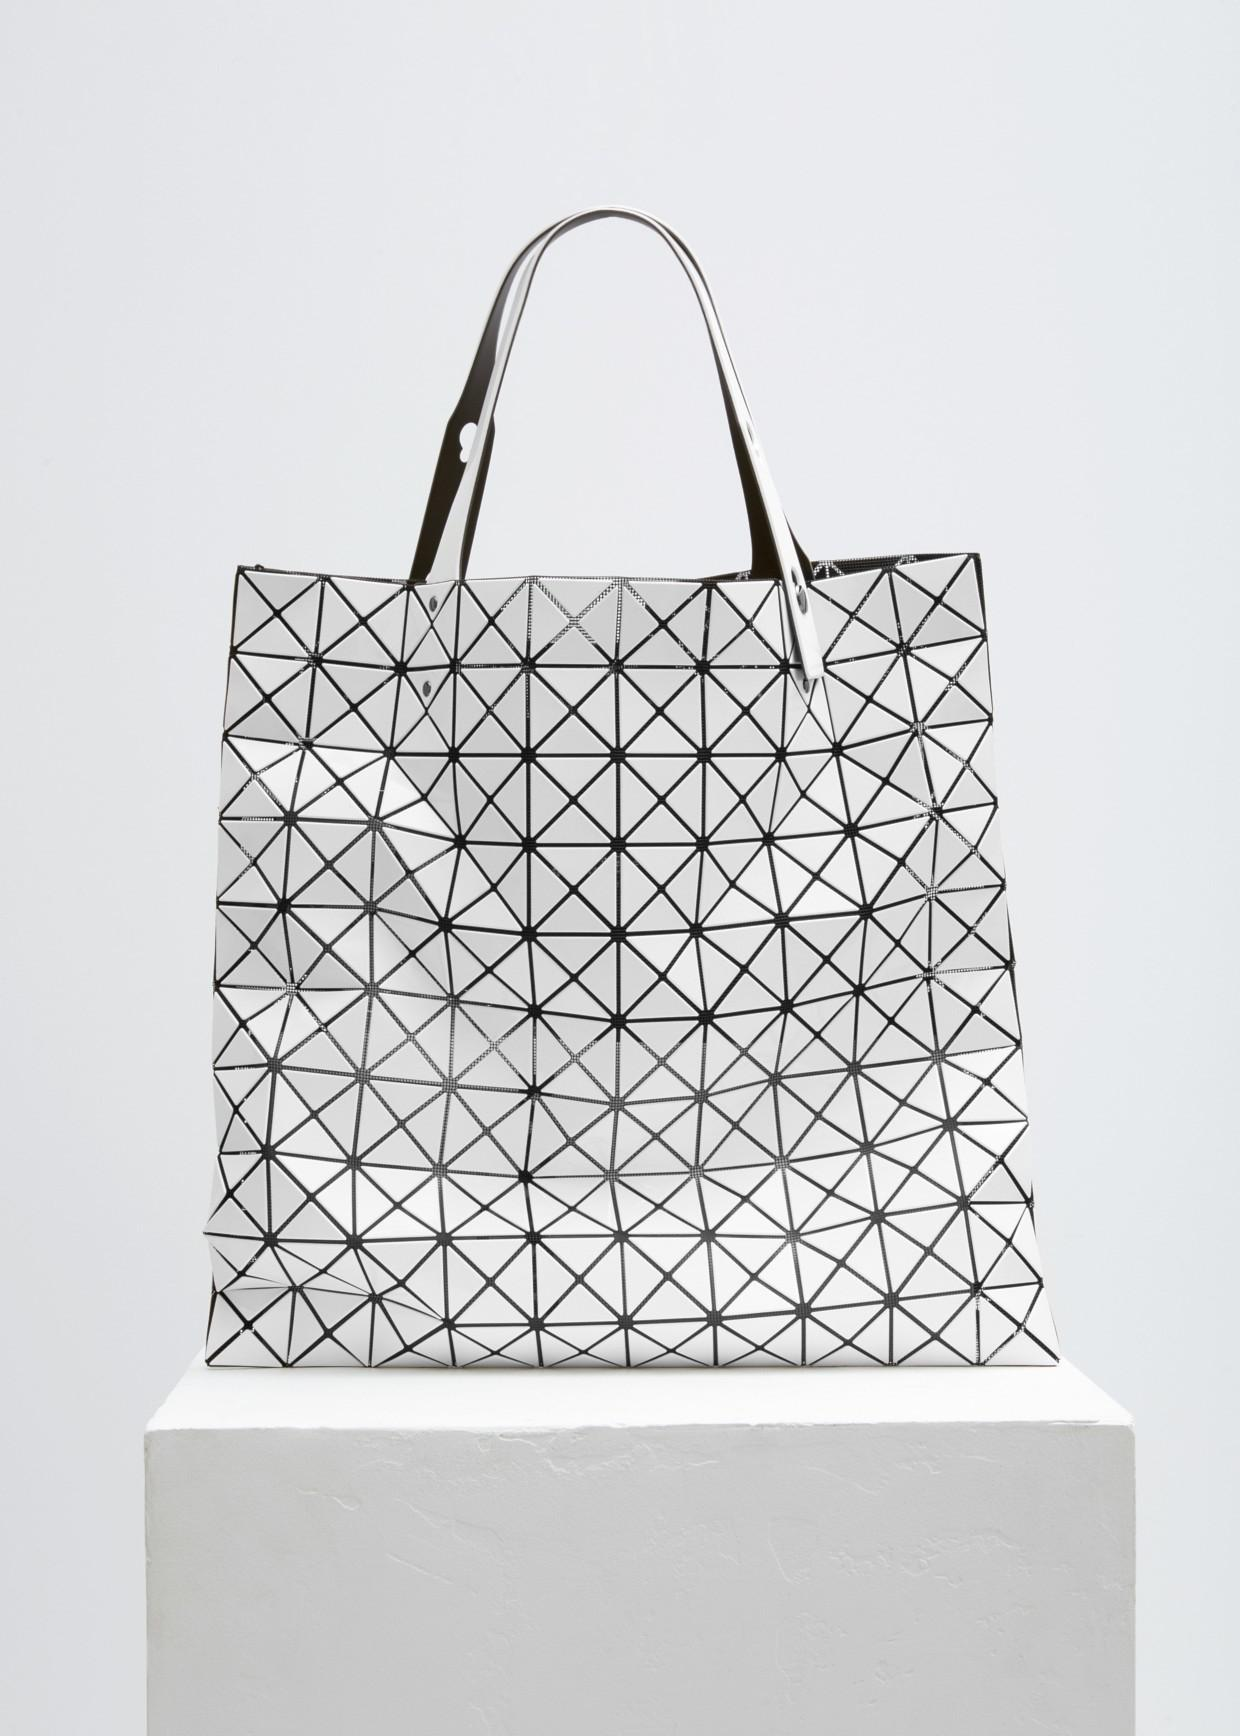 Bao Bao Issey Miyake White Prism Shiny Large Tote in White - Save 1 ... d0b0953147f2c